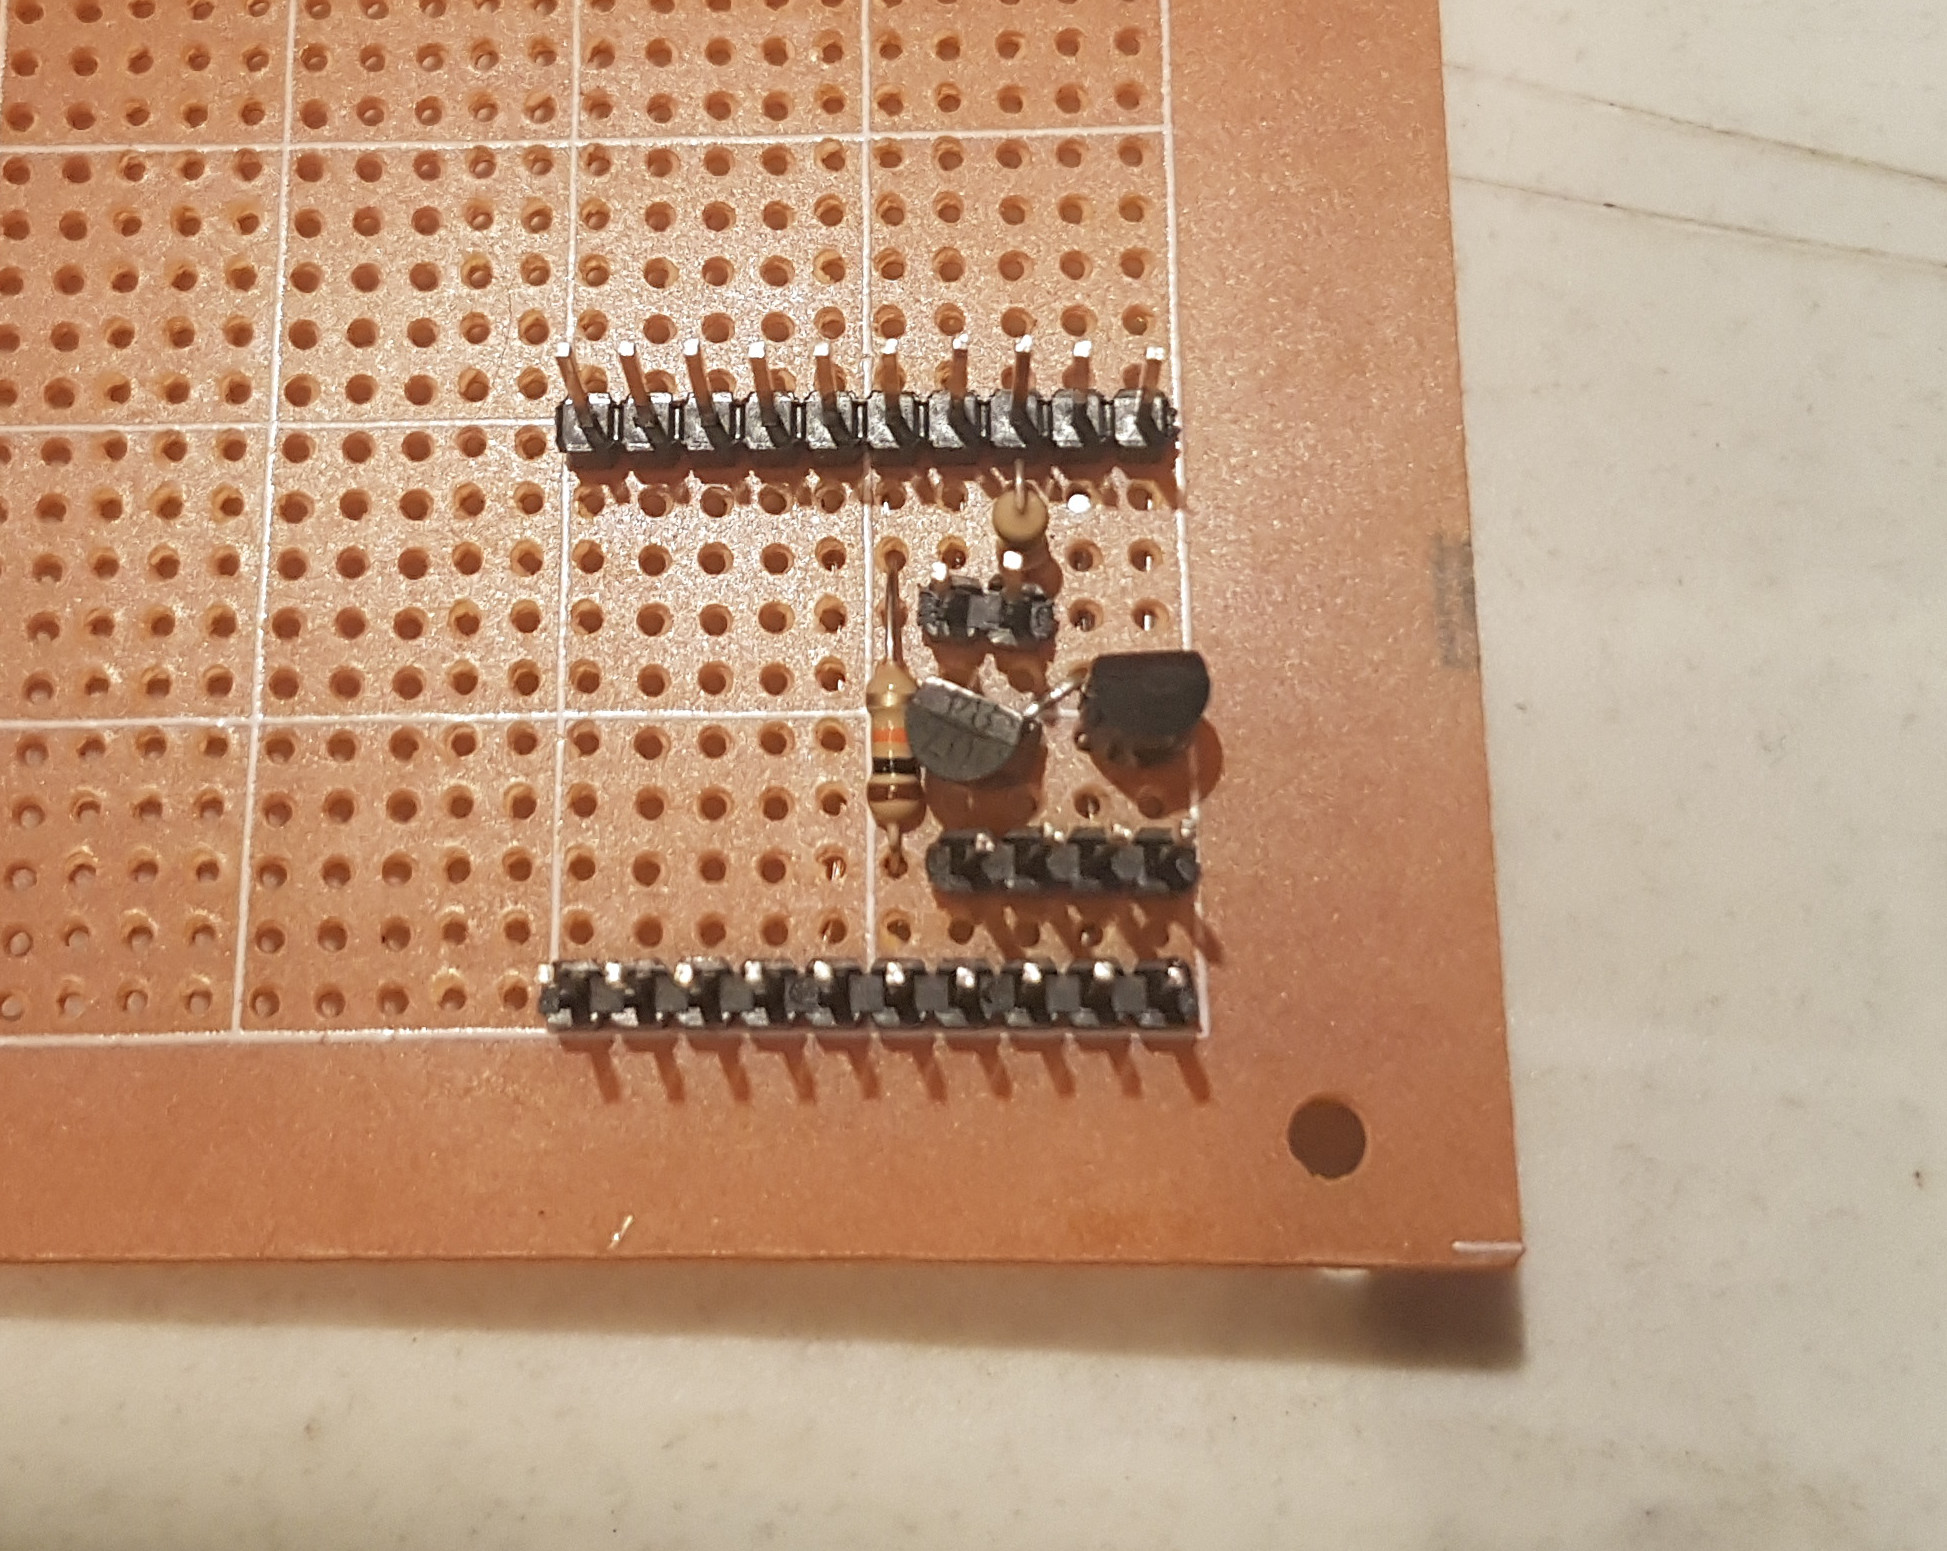 The finished breadboard